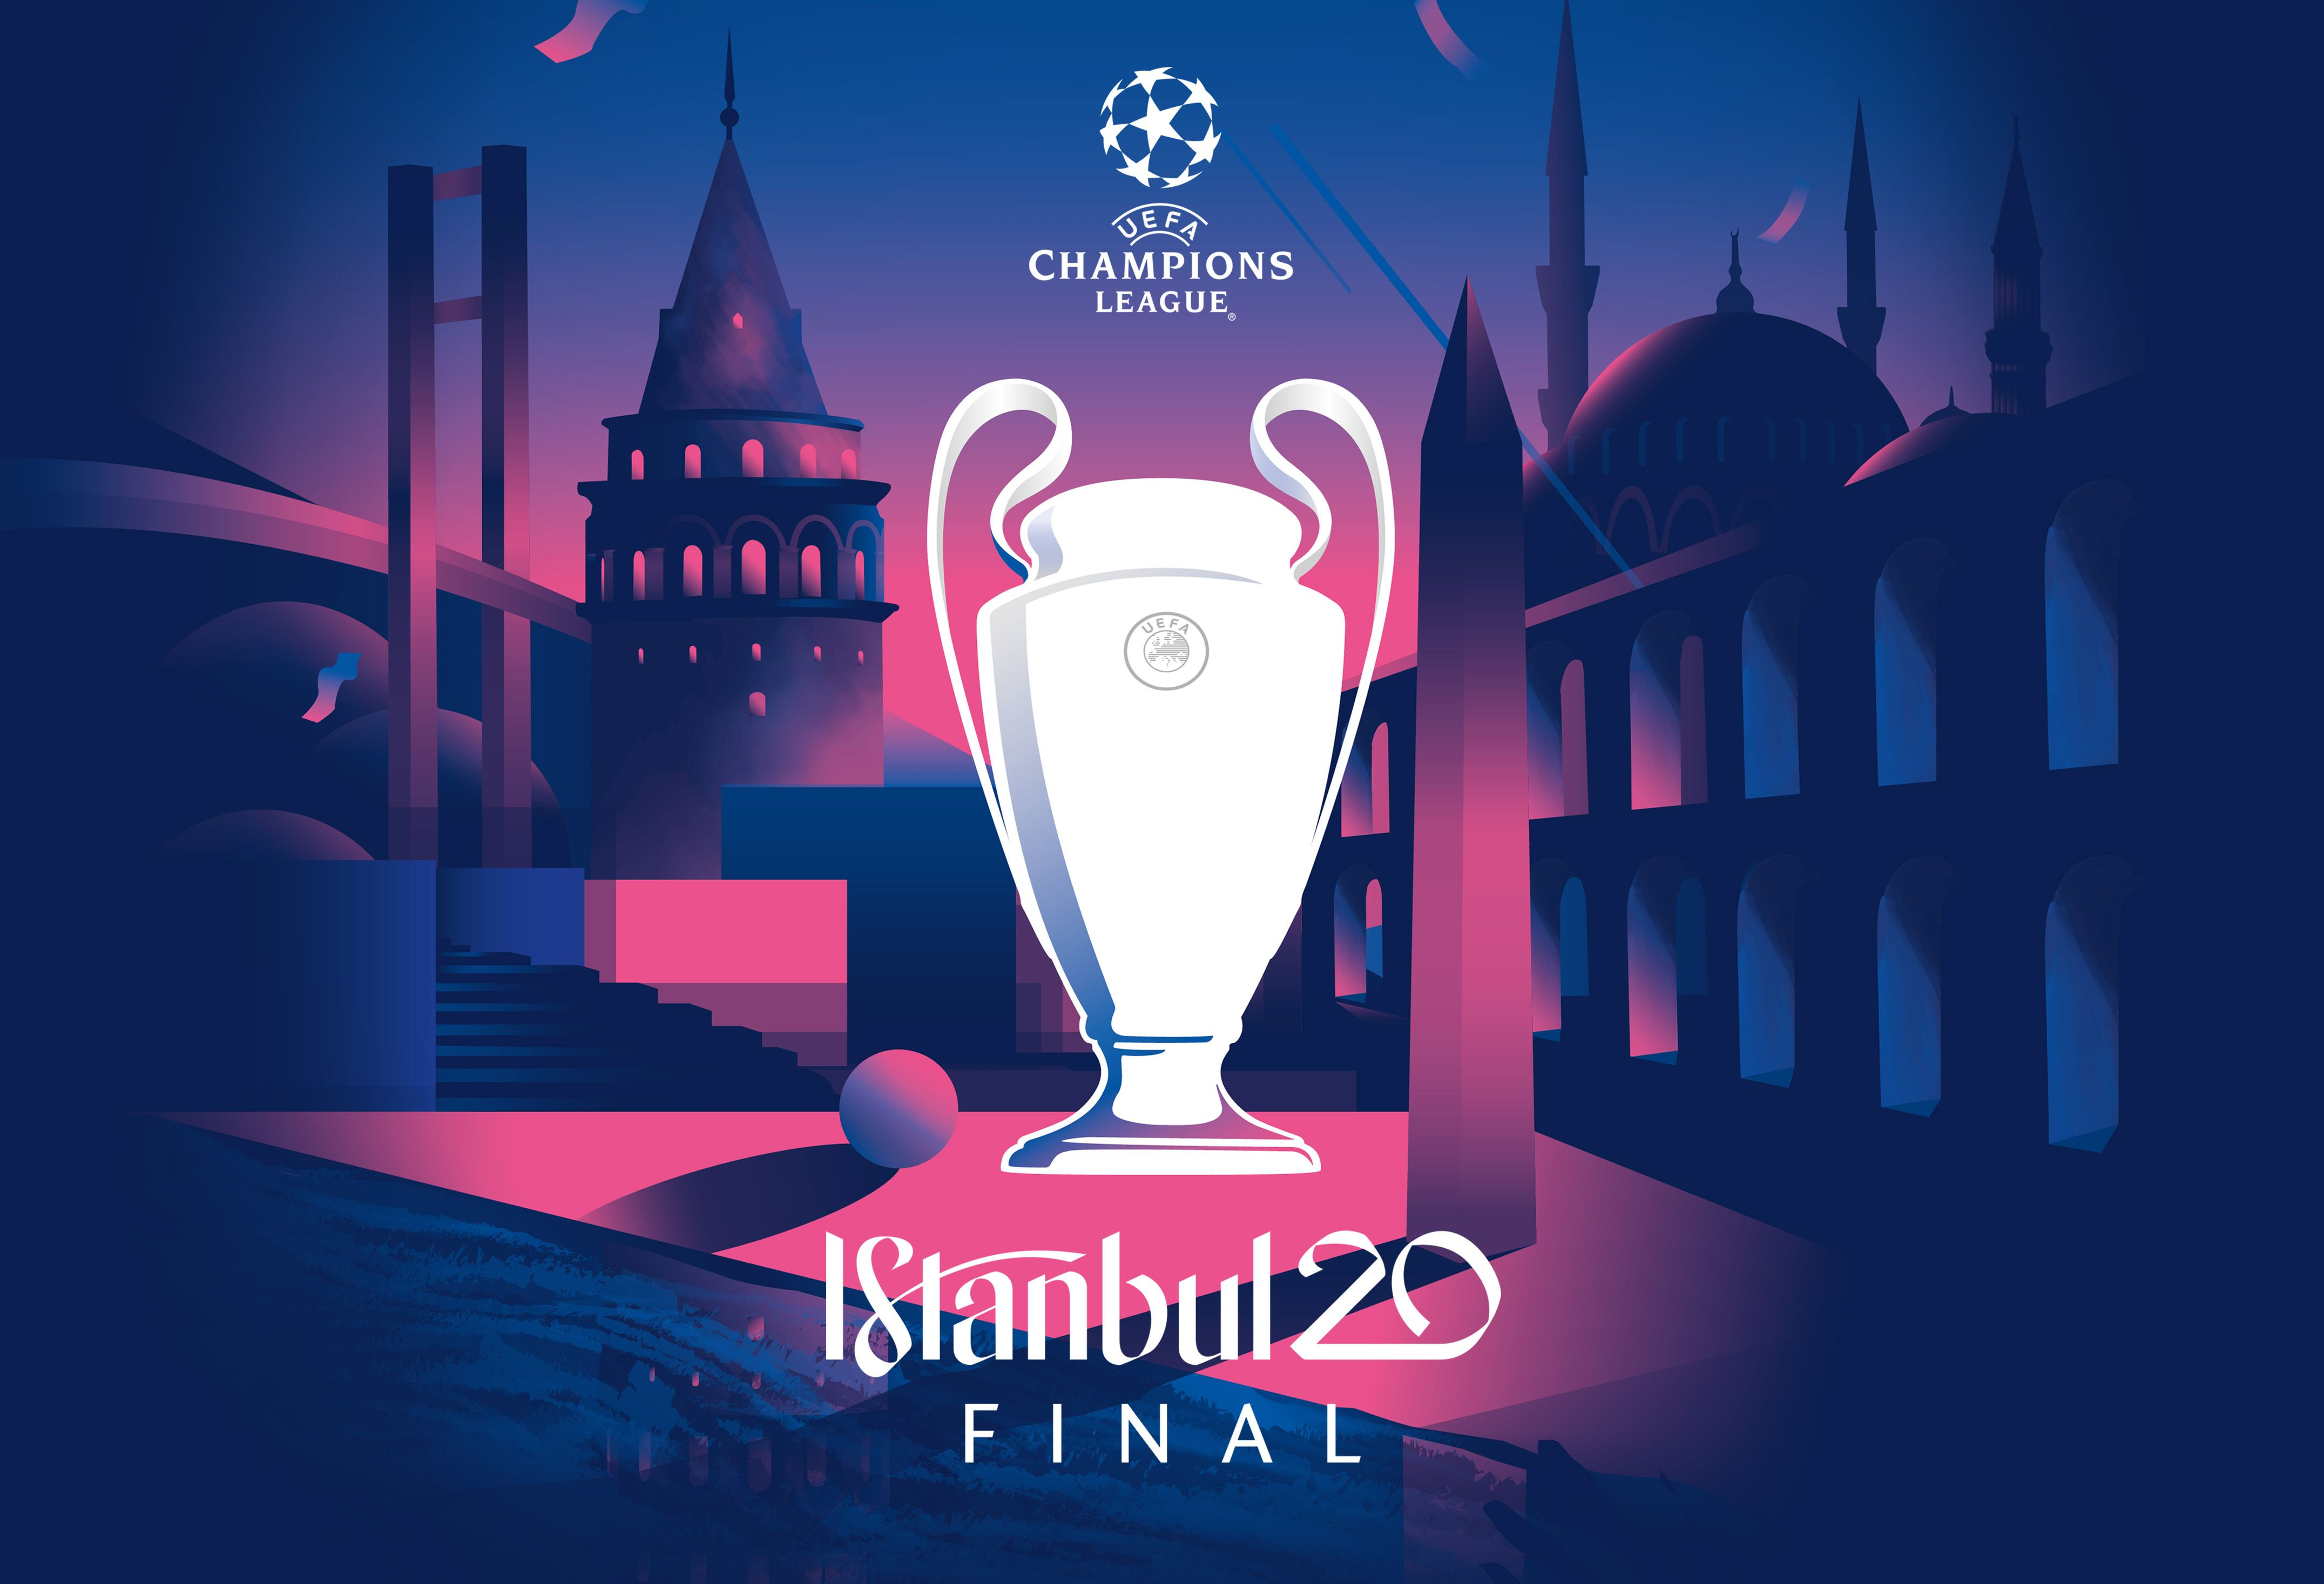 Pin By Ahmad Maharmeh On Amm In 2020 Champions League Champions League Logo Champions League Final